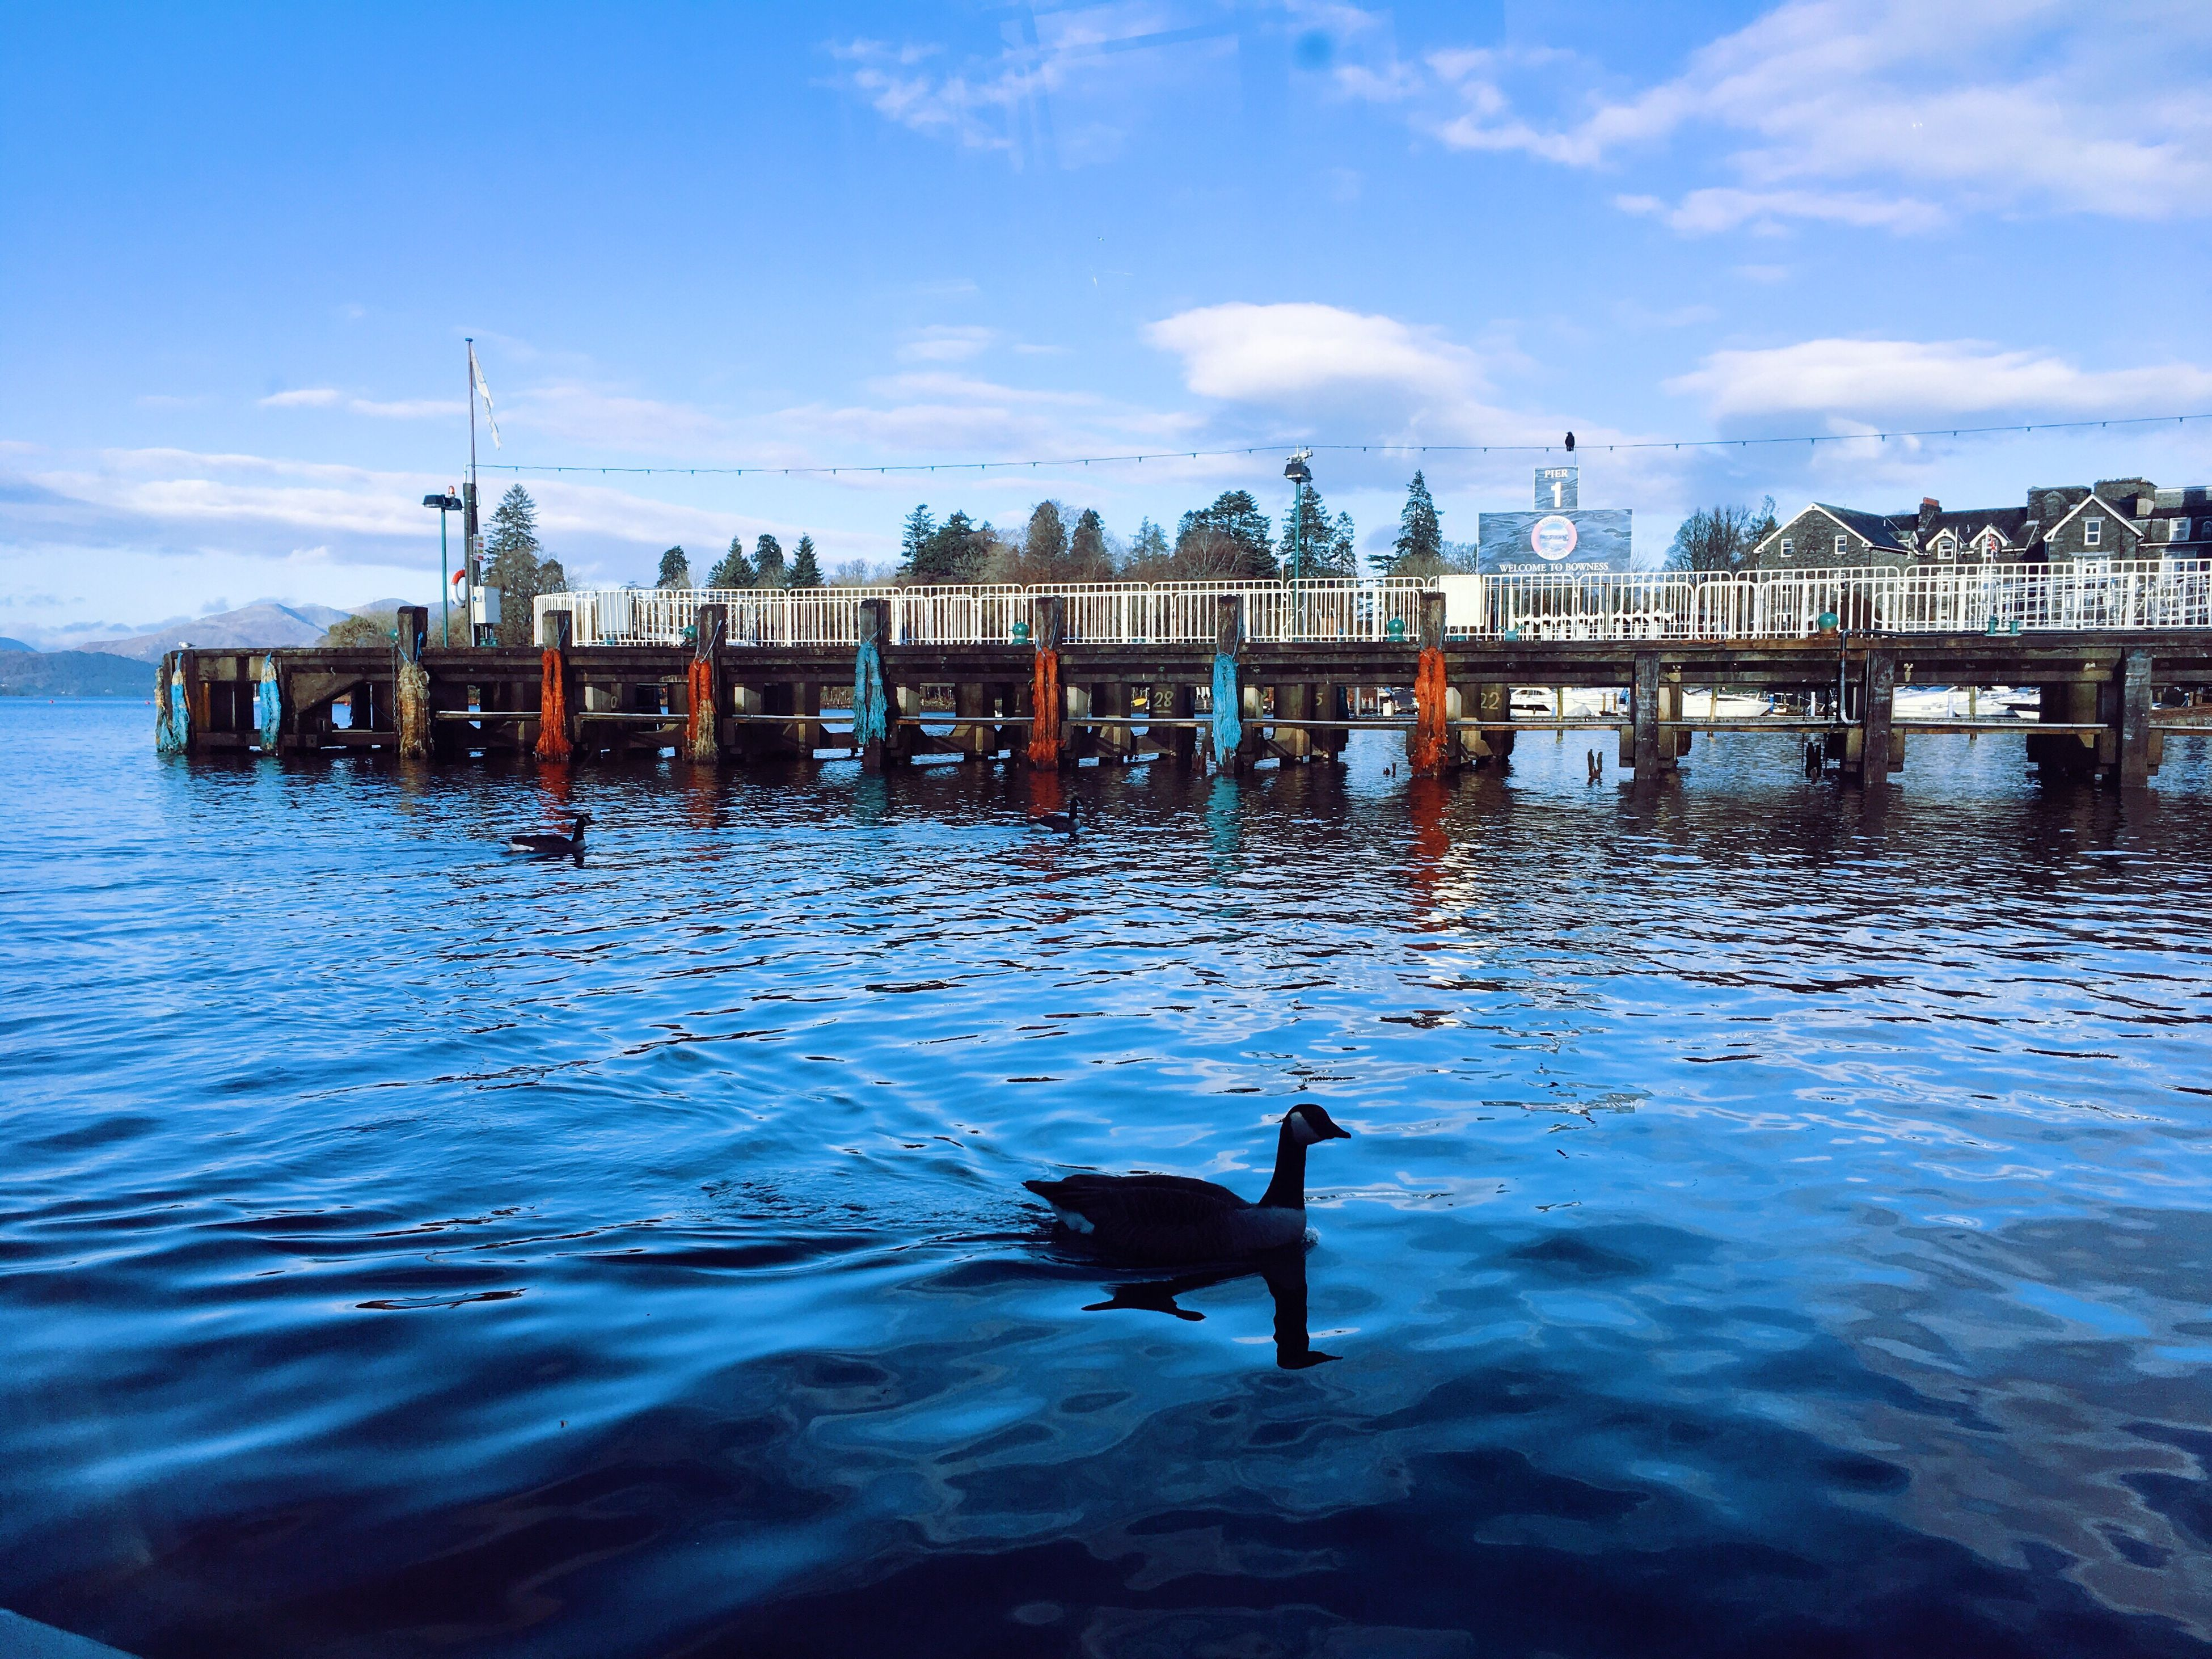 water, animal themes, animals in the wild, day, waterfront, animal wildlife, cloud - sky, built structure, sky, architecture, outdoors, bird, nature, one animal, wooden post, no people, beauty in nature, swimming, building exterior